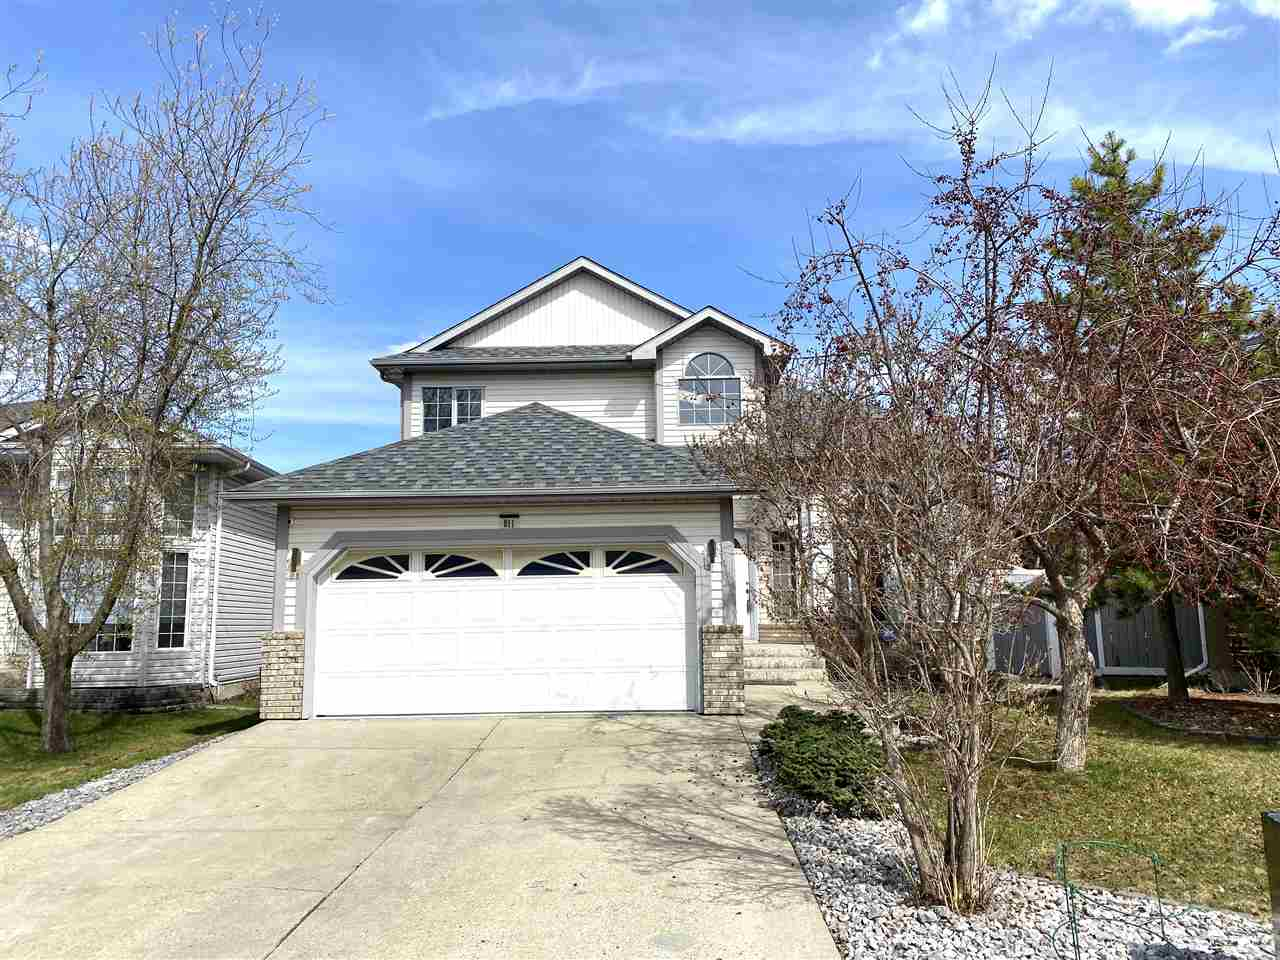 PRICE DROP! SAVE 35K! Nicely Updated 2 Storey Home in Twin Brooks! Vaulted Ceilings and numerous upgrades like; Quarts counters, Newer kitchen, New Flooring, New paint and the list goes on! This 4 bedroom home offers a ton of storage space, a large rec room and loads of space for your family to enjoy both inside and outside in the large yard. All this home needs is you! SELLER IS OFFERING A SWIM SPA AT NO CHARGE WITH THE PURCHASE OF THIS HOME!